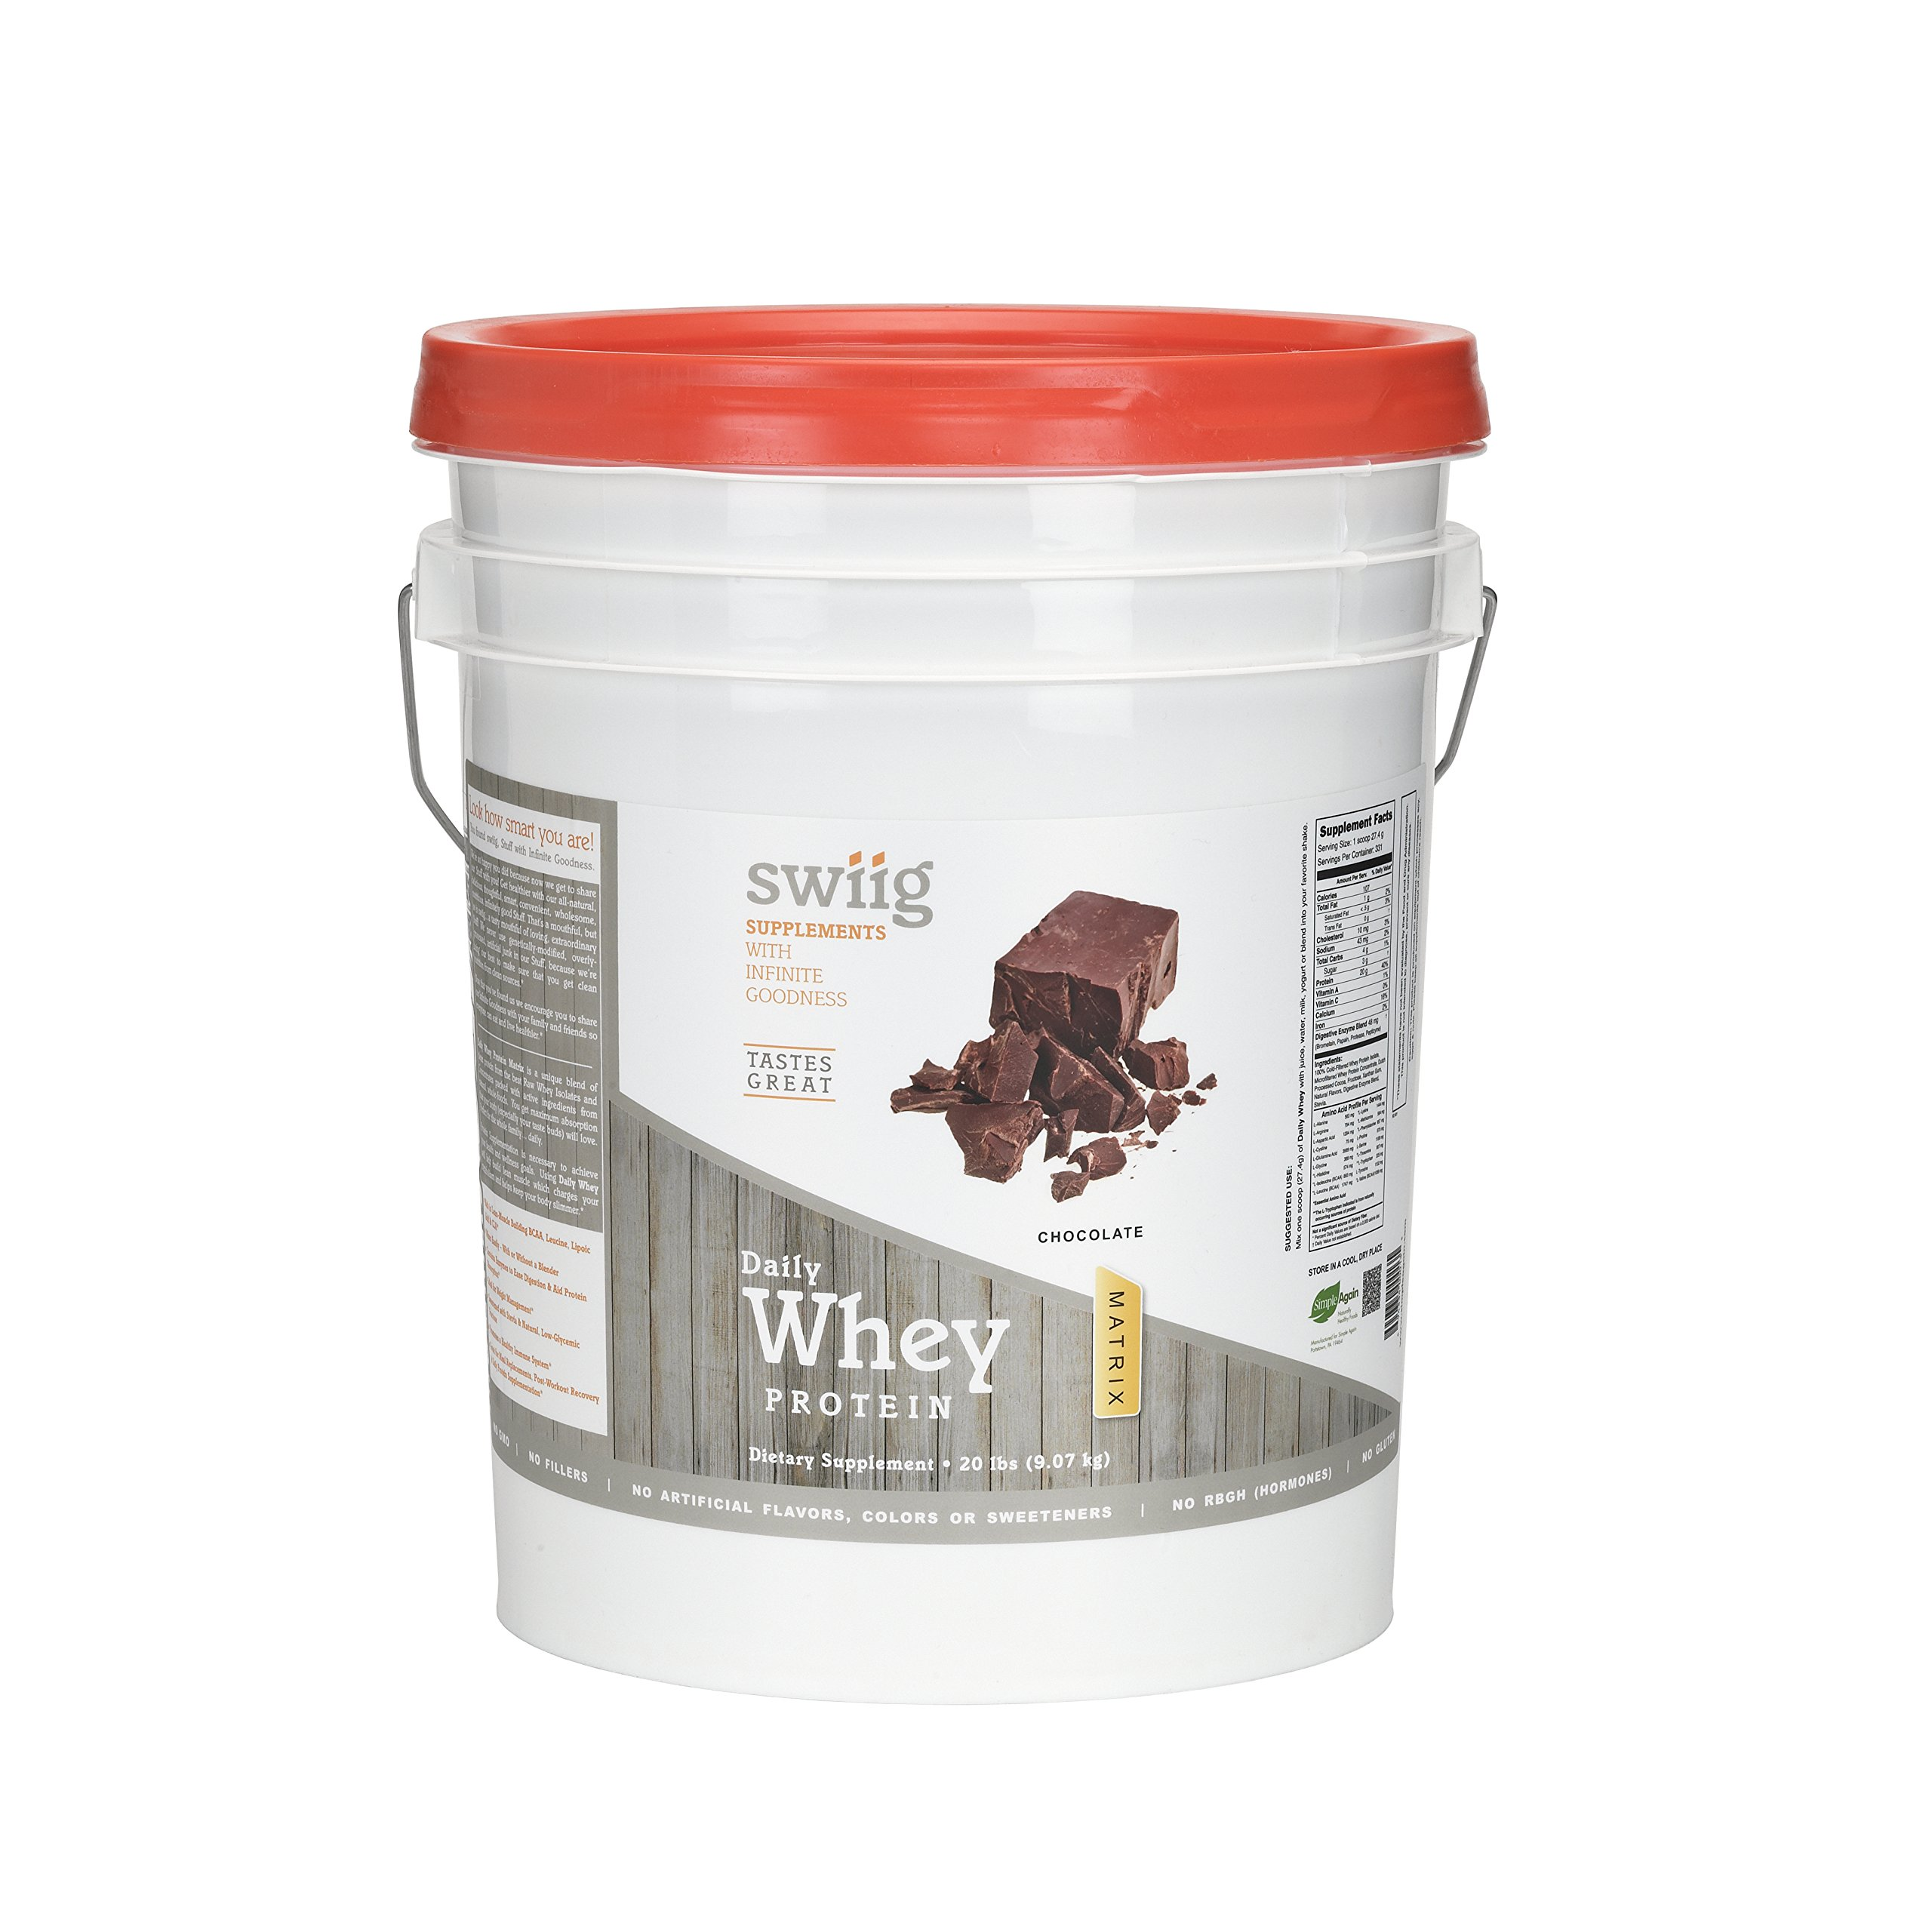 swiig Chocolate Whey Protein Matrix 20 lbs